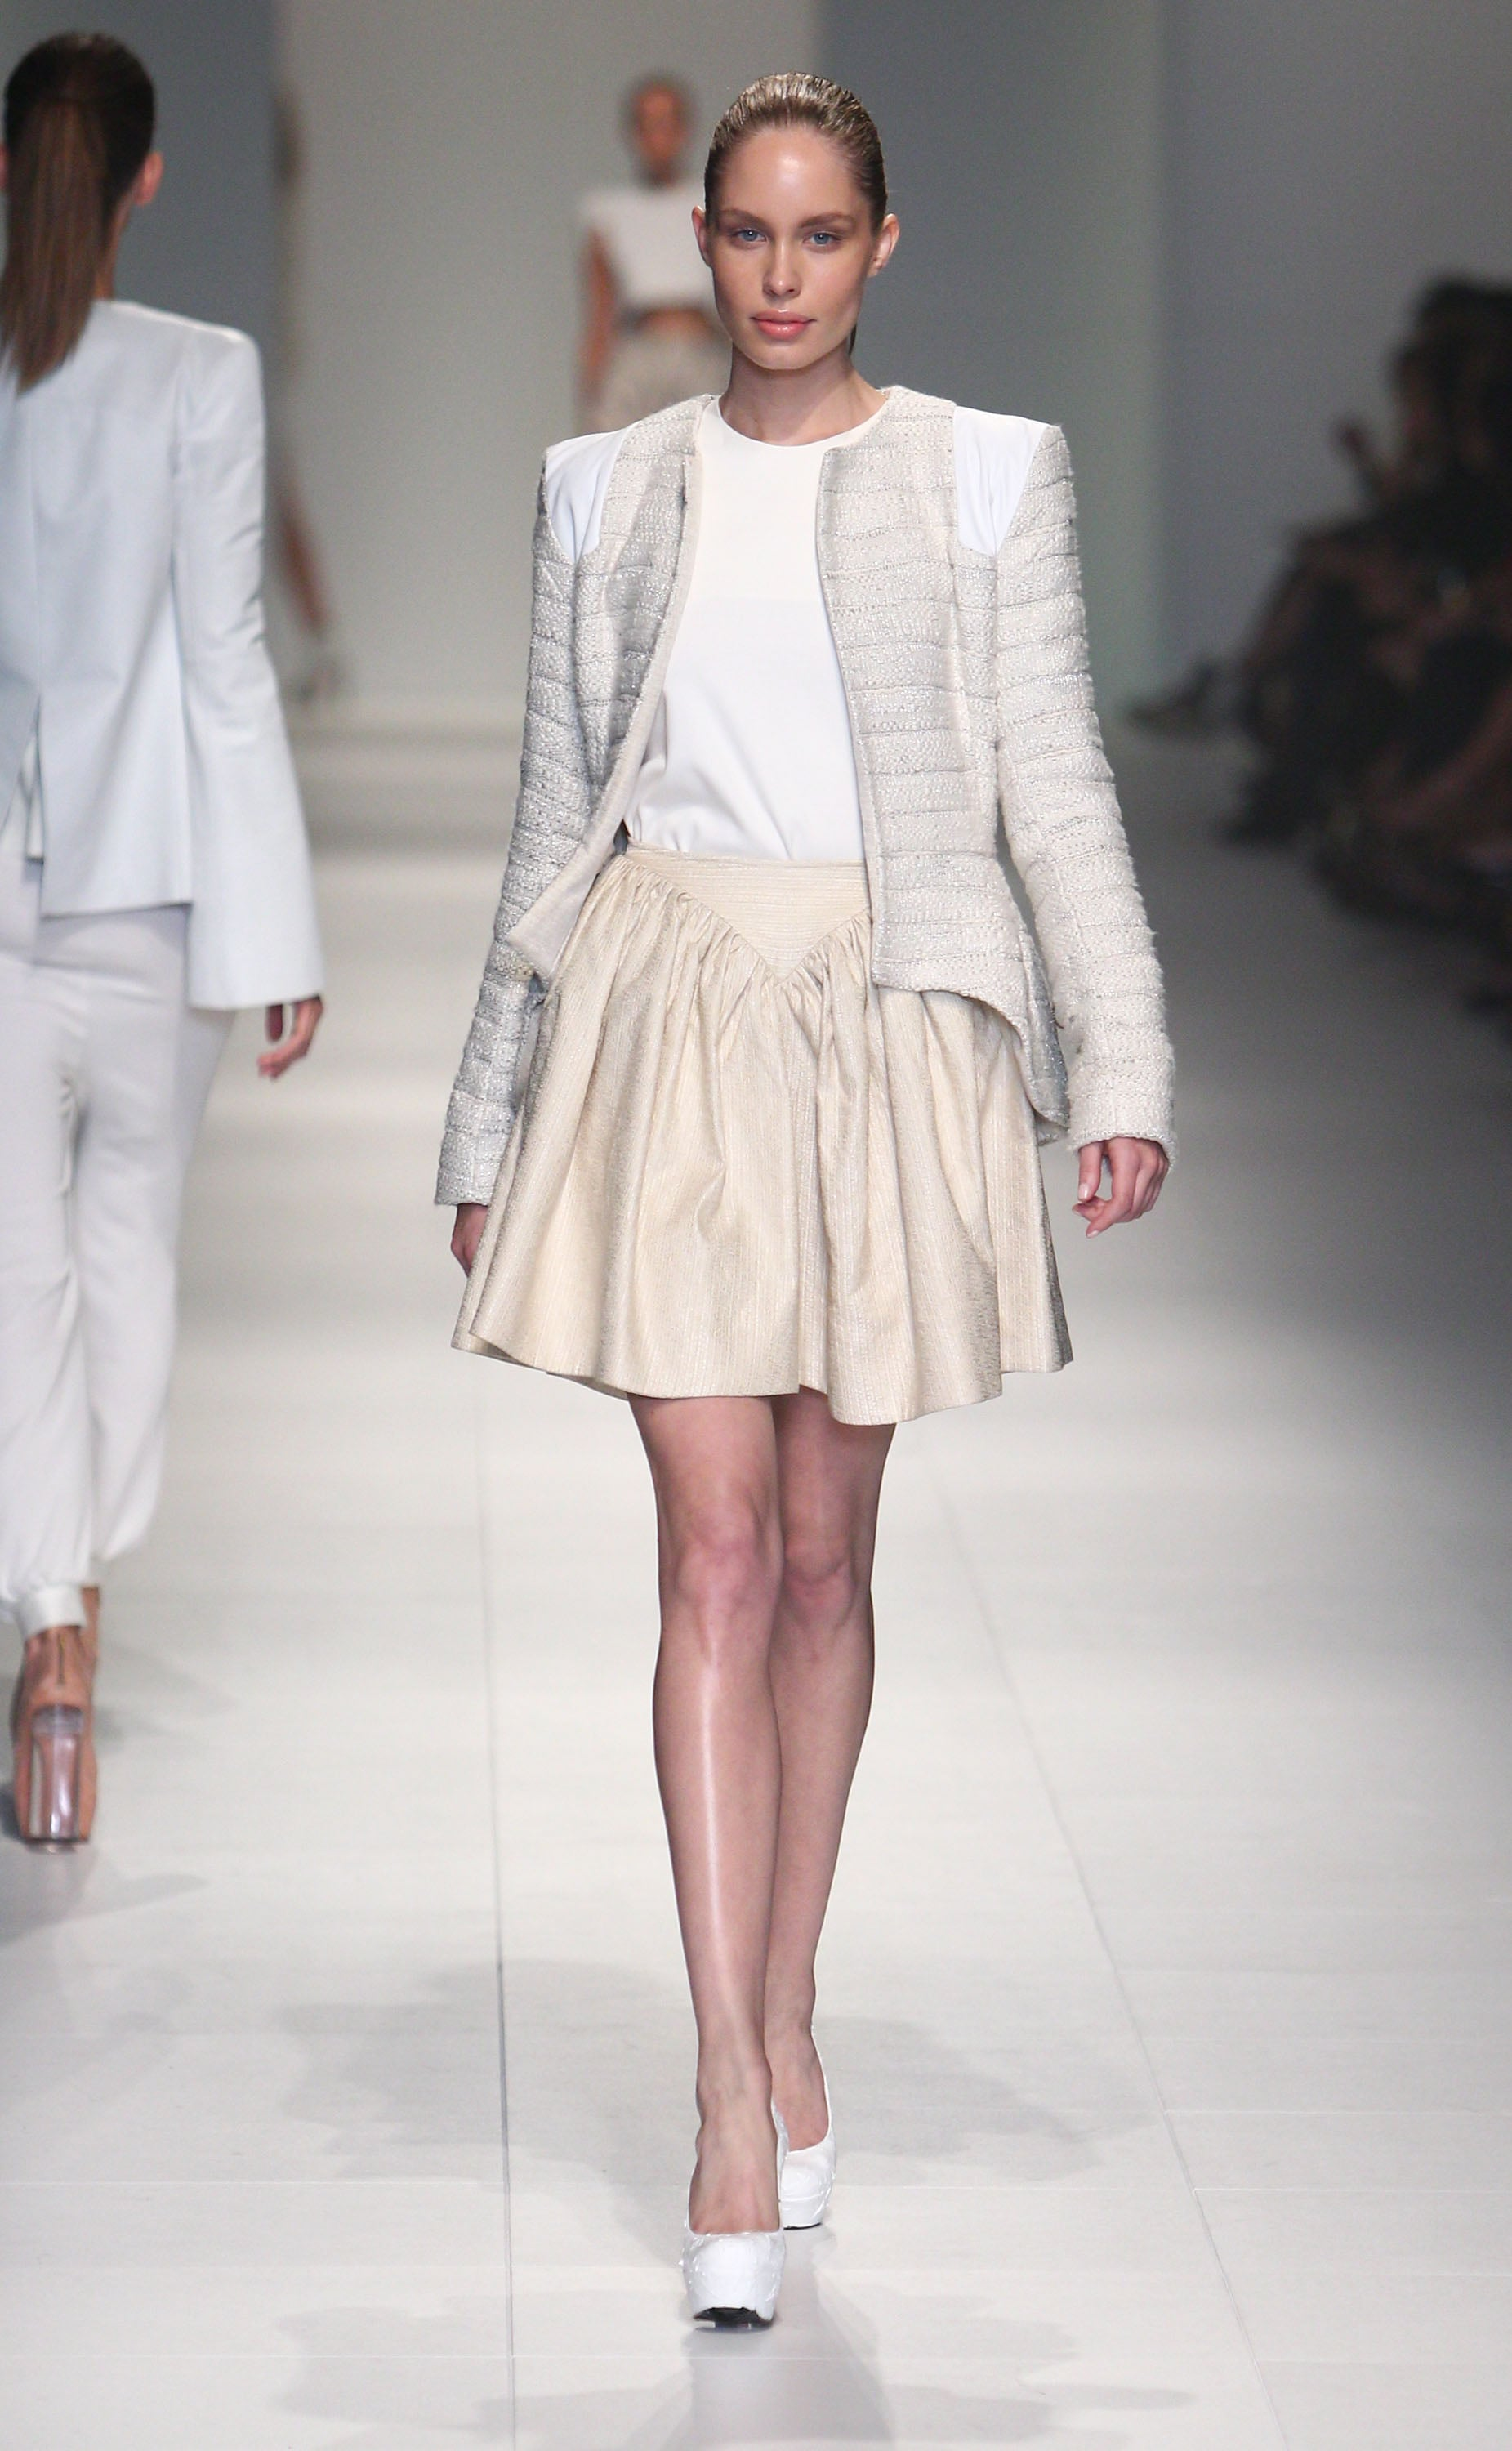 Another luxed up look from Ellery.